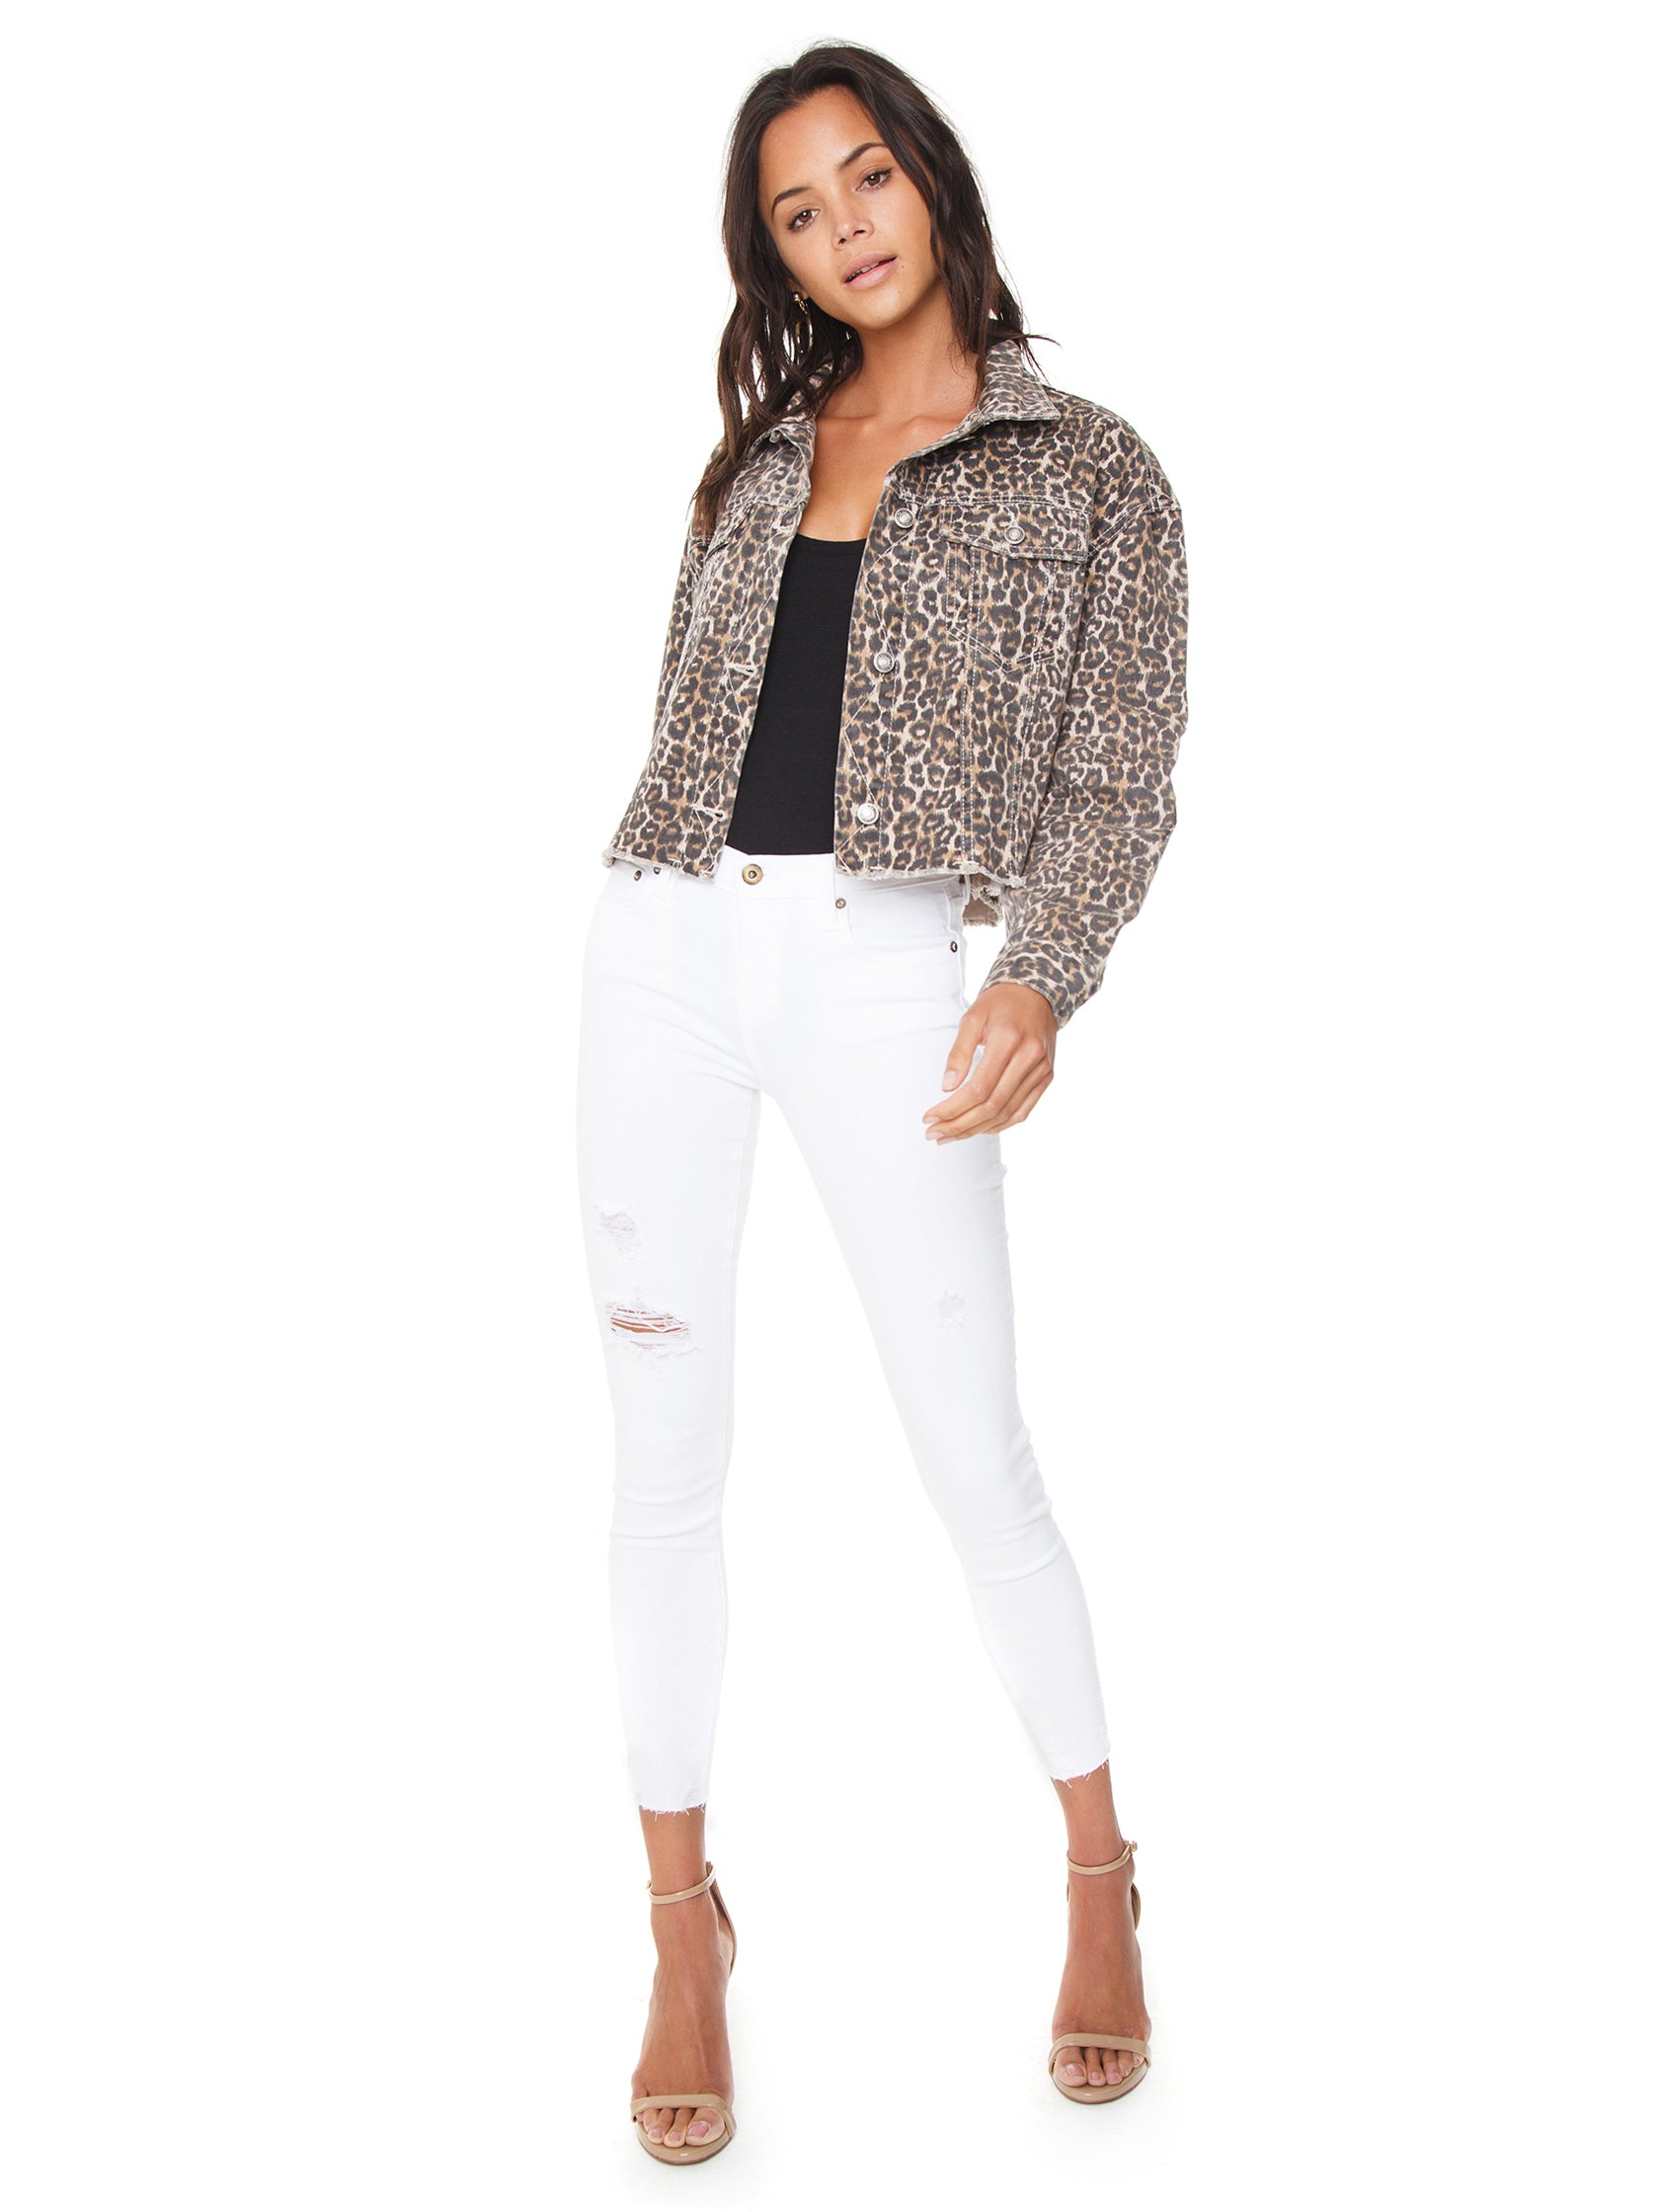 Girl wearing a jacket rental from Free People called Cheetah Printed Denim Jacket